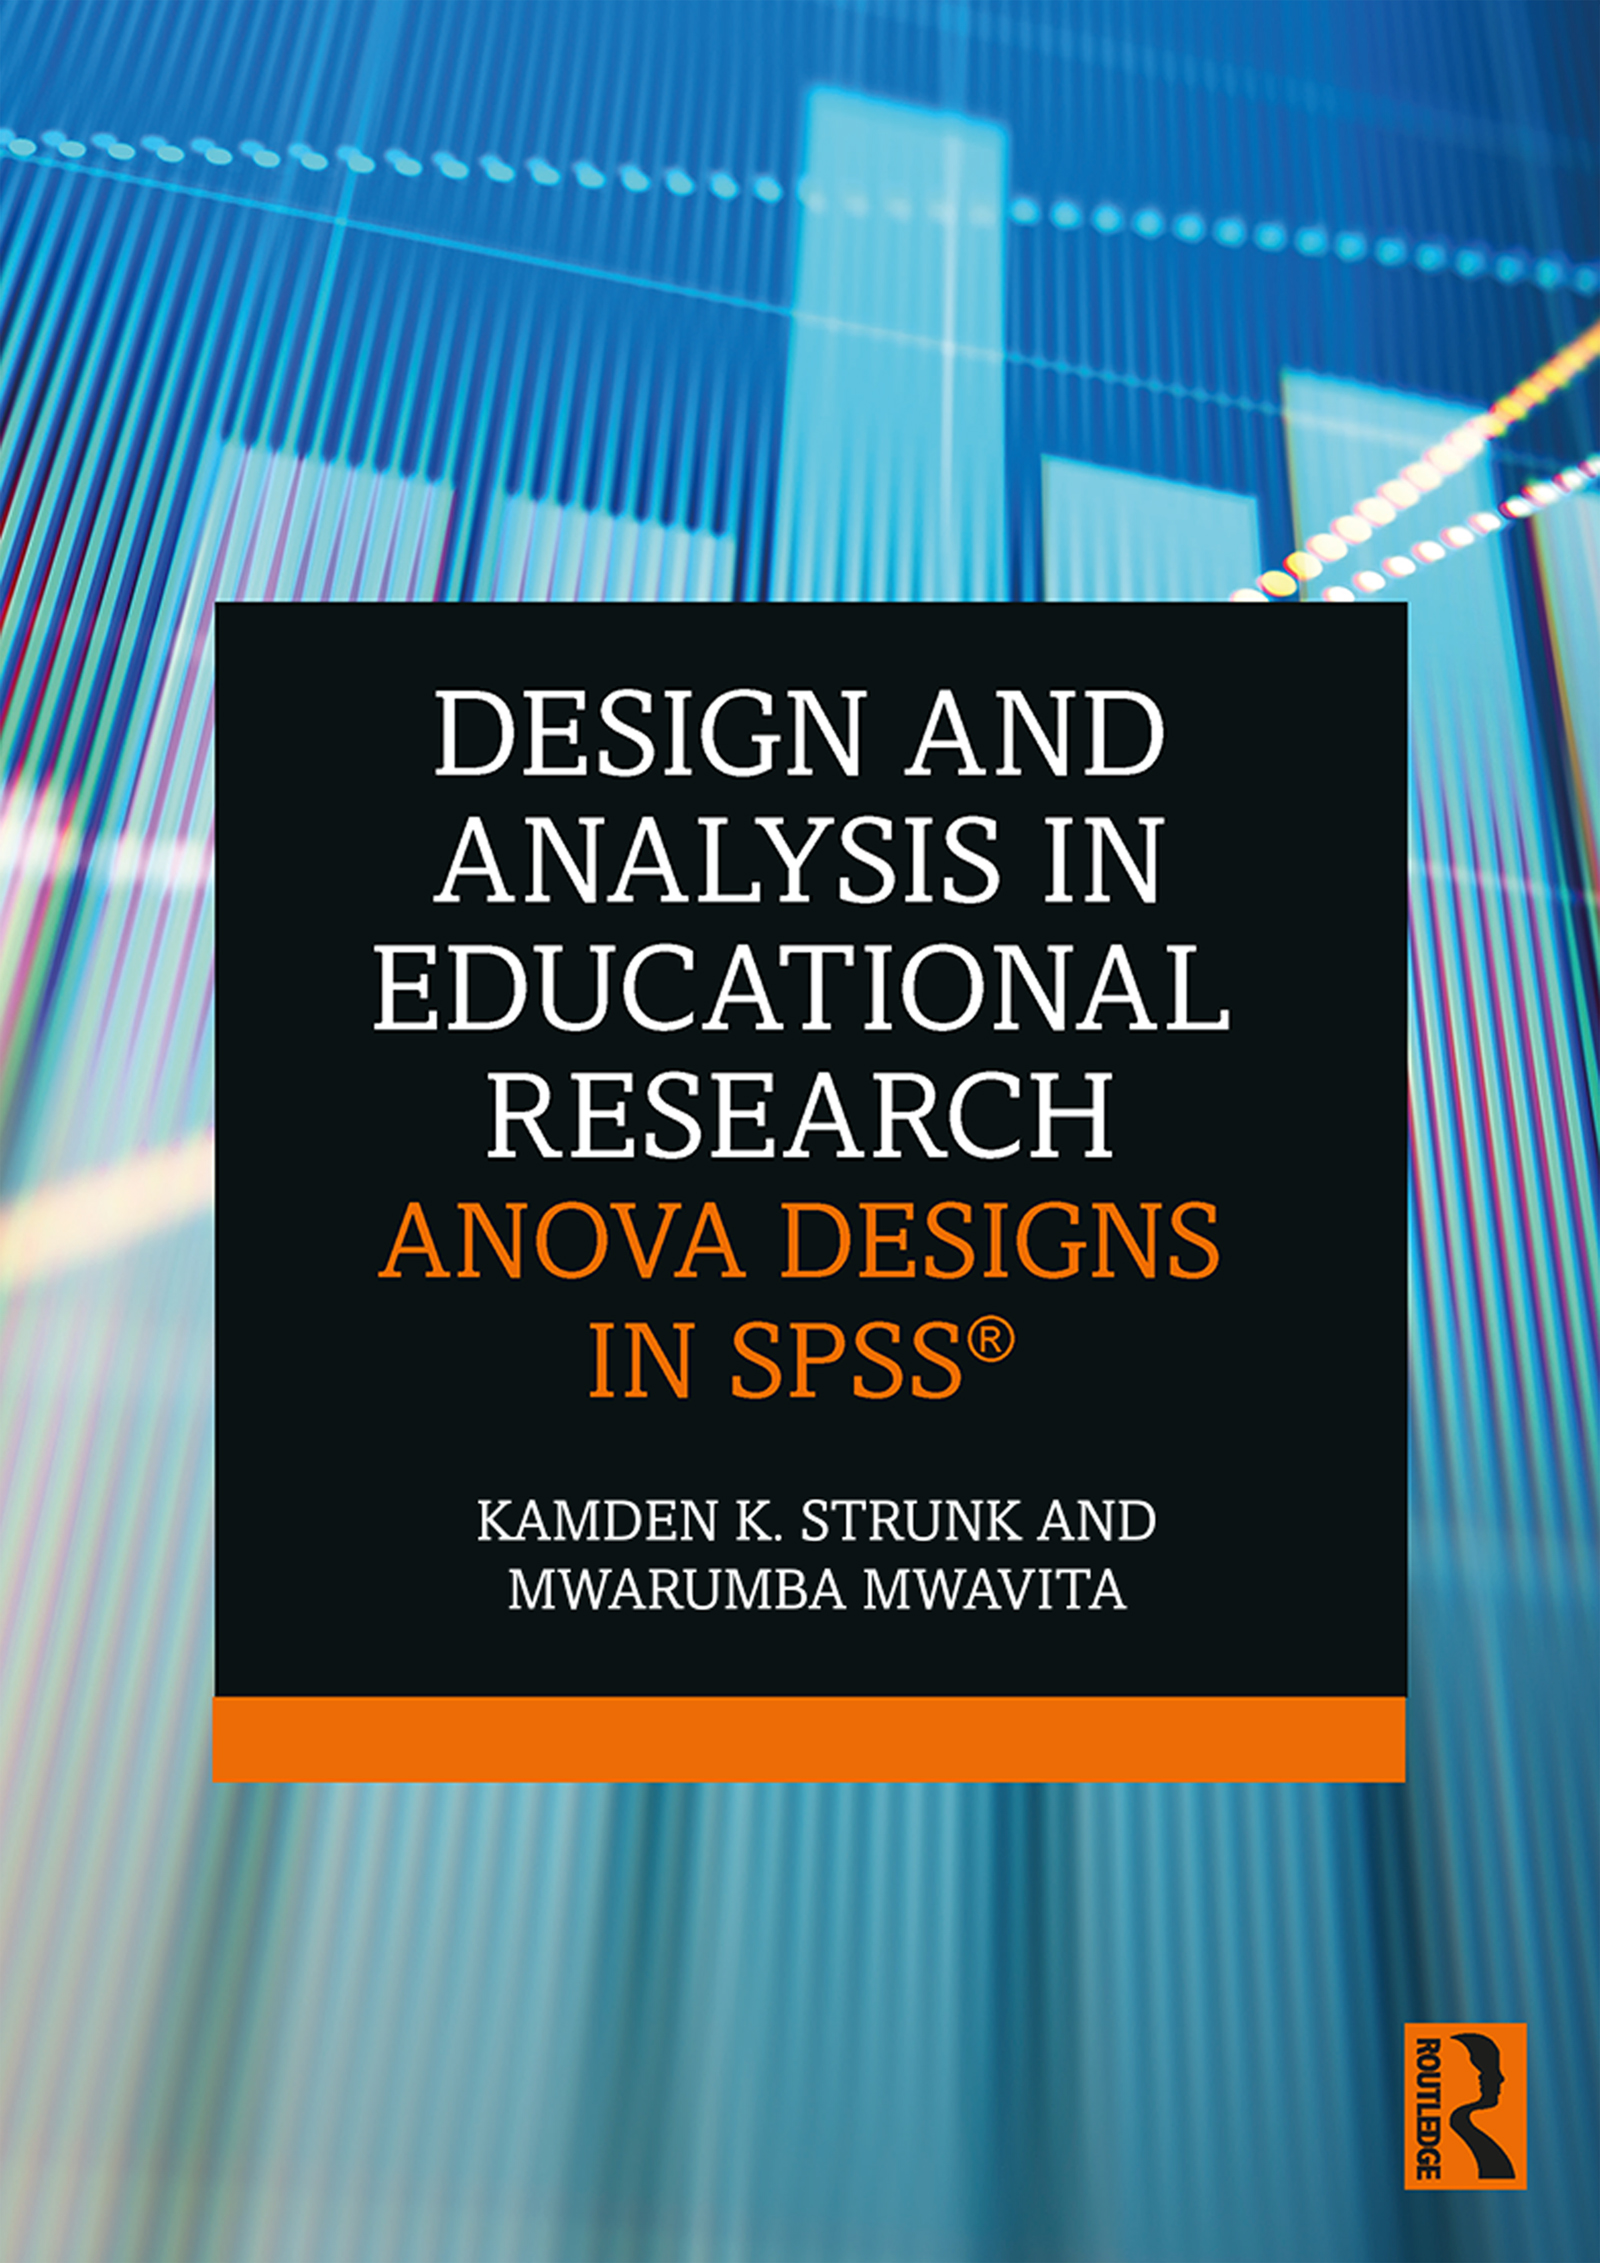 Design and Analysis in Educational Research